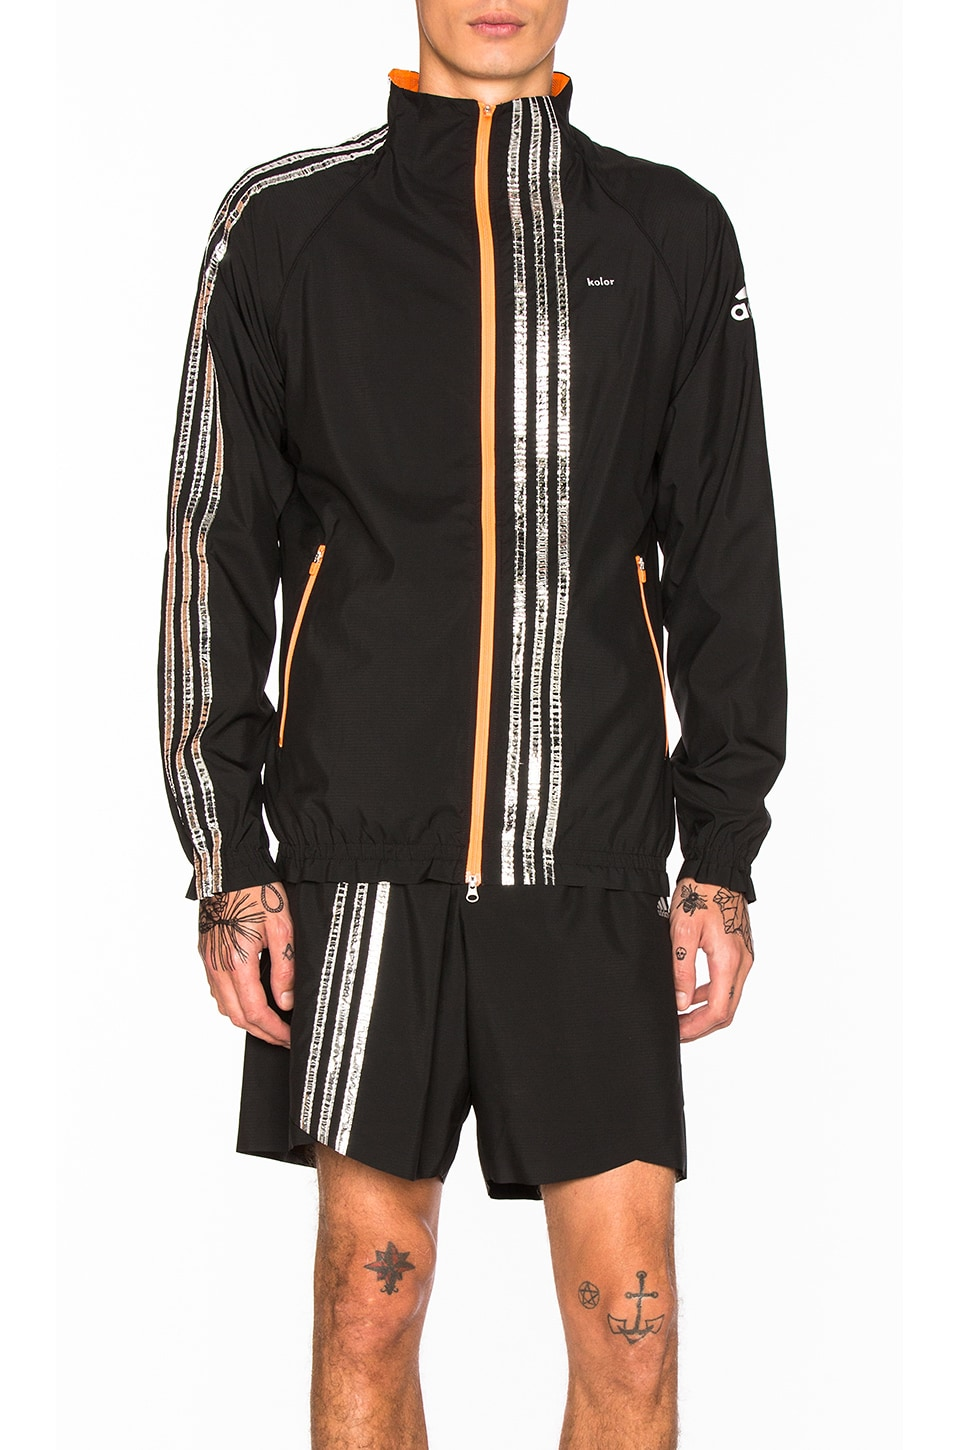 x Kolor Track Jacket by Adidas